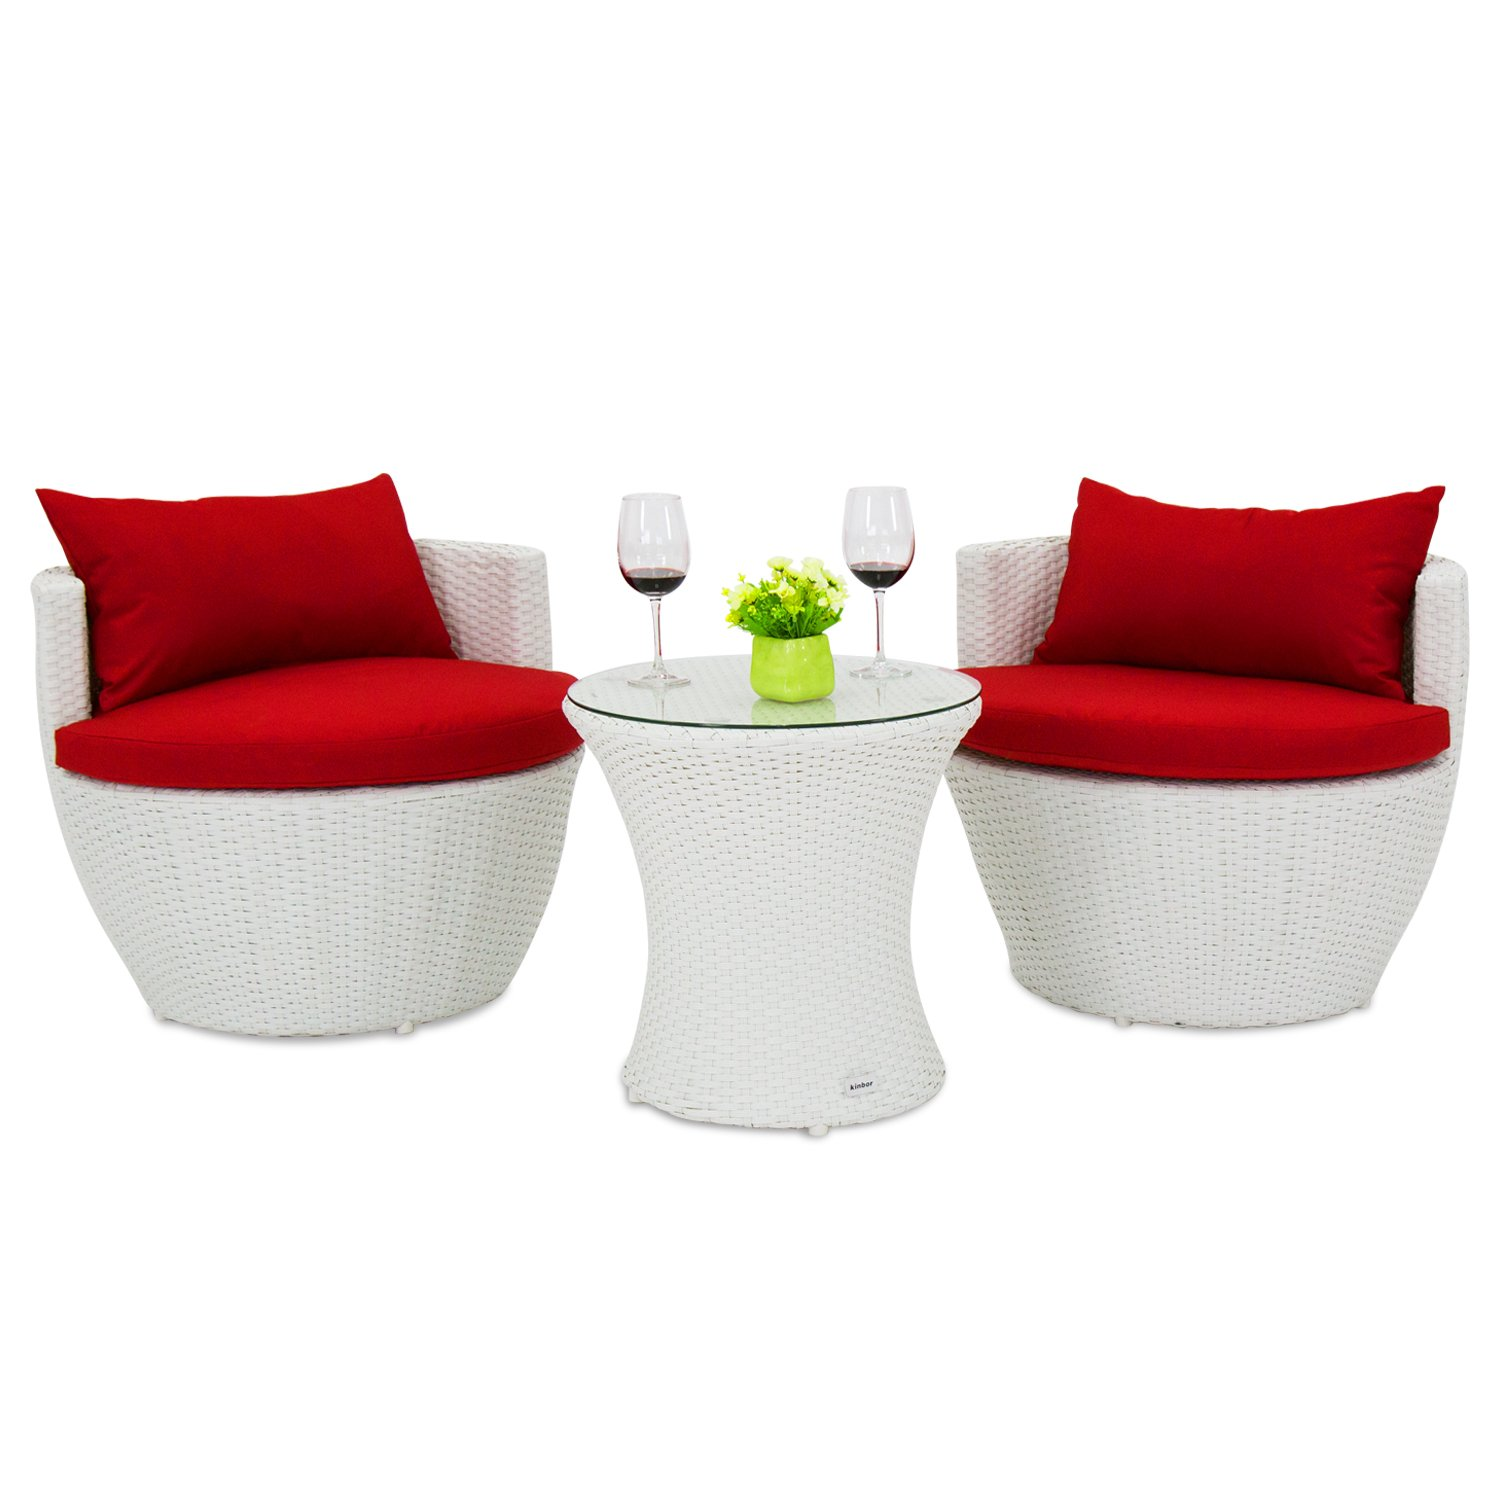 Kinbor 3Pcs Wicker Rattan Furniture Set Patio Outdoor Stackable Vase Coffee Table and Chairs w/Cushions (white)